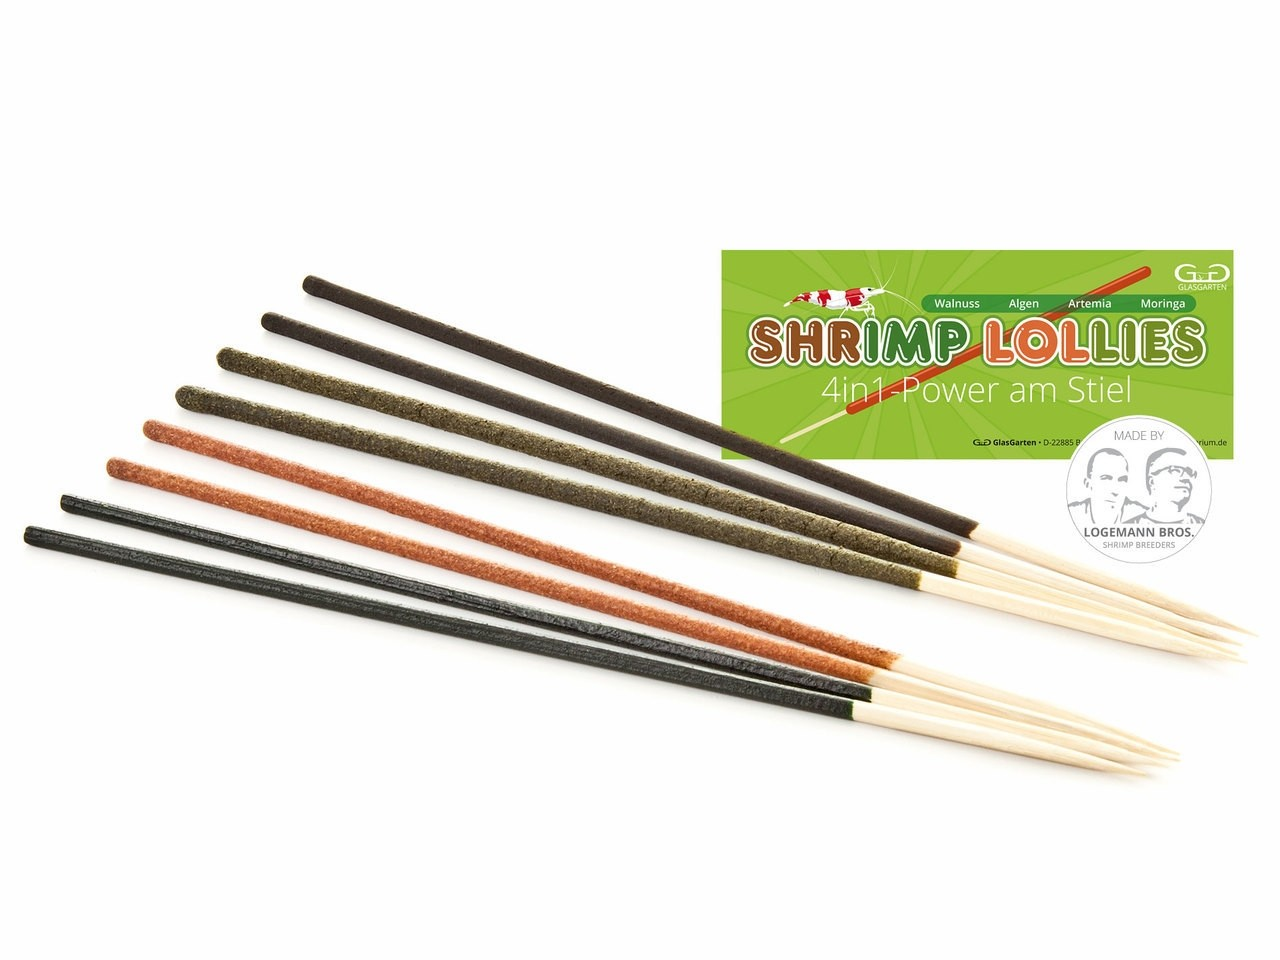 Shrimp Lolipops